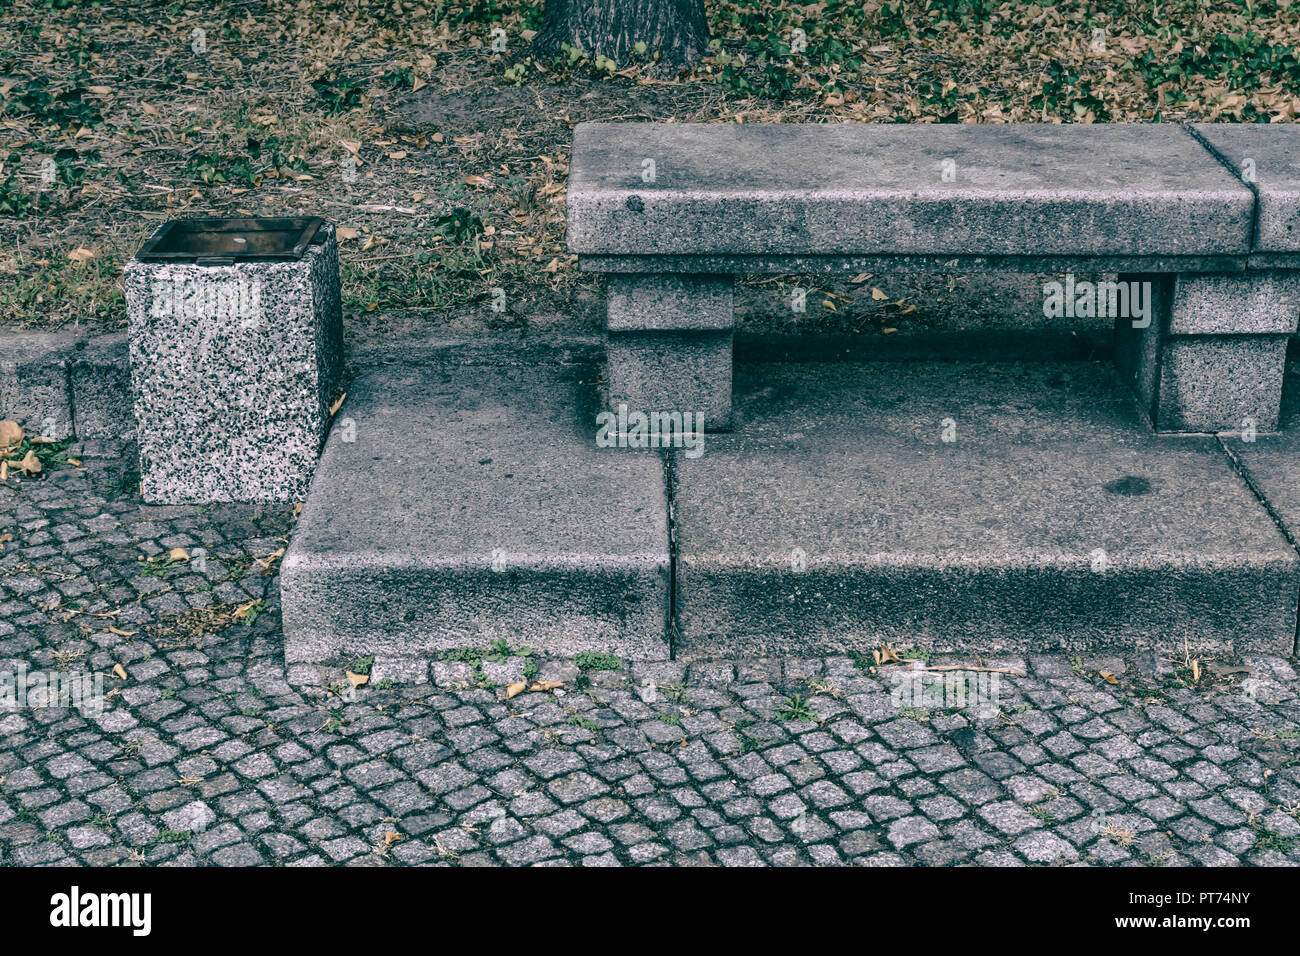 Berlin, Germany, October 06, 2018:  Close-Up of Stone Bench at Park - Stock Image